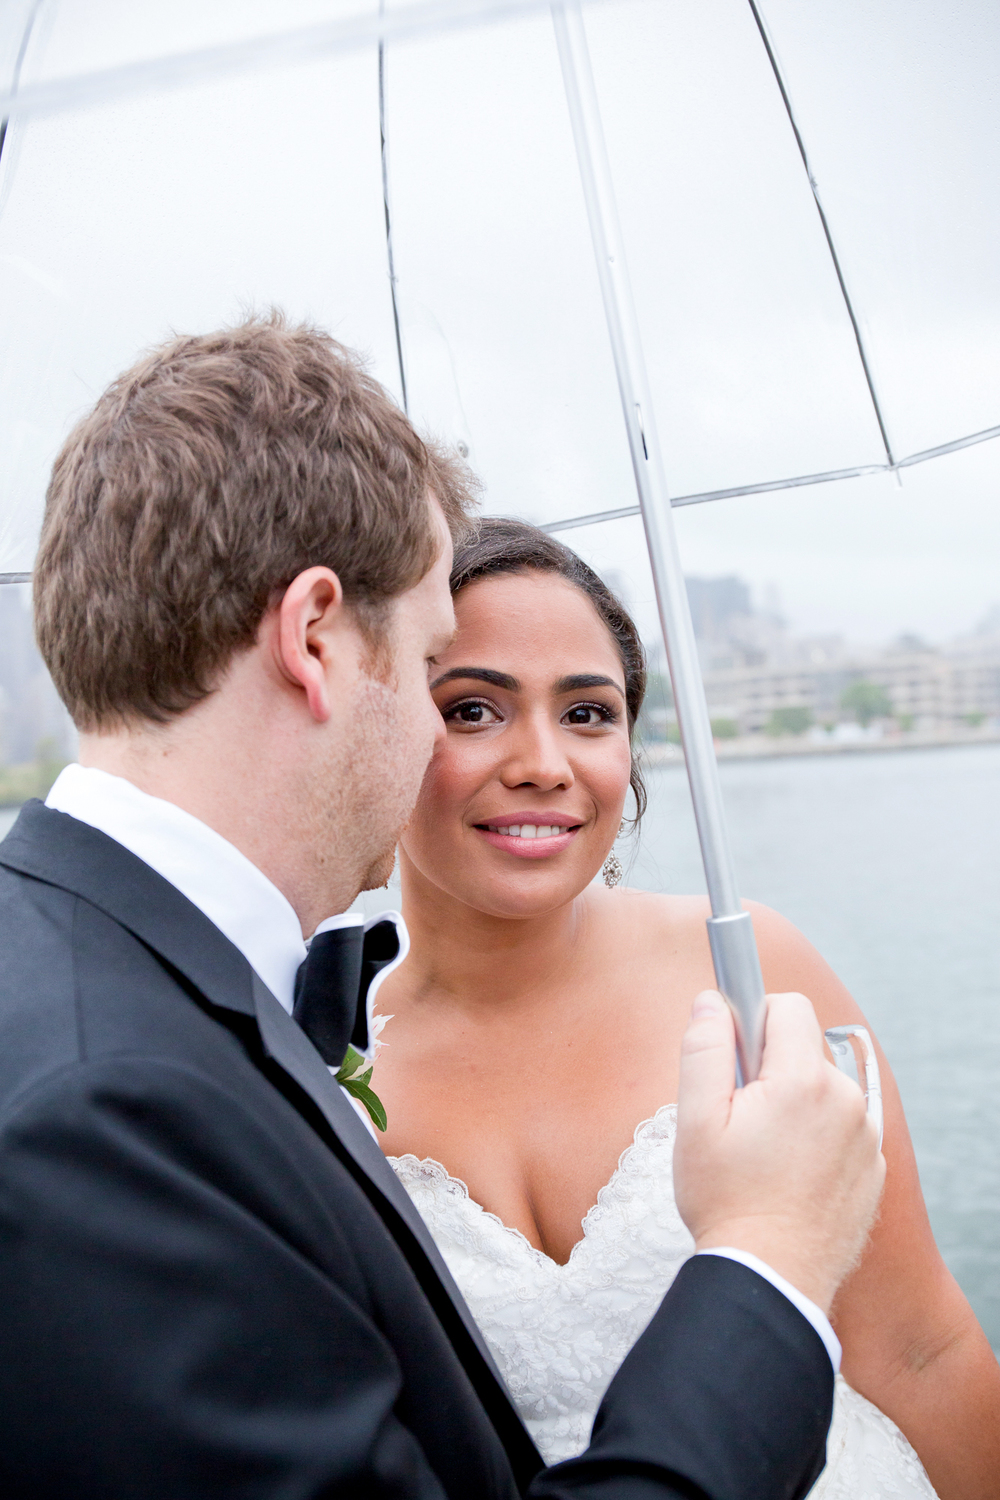 141_CarlyGaebe_SteadfastStudio_WeddingPhotography_NewYork_LongIslandCity_WatersEdge_EastRiver_Rainy_Umbrella_Bride_Groom.jpg